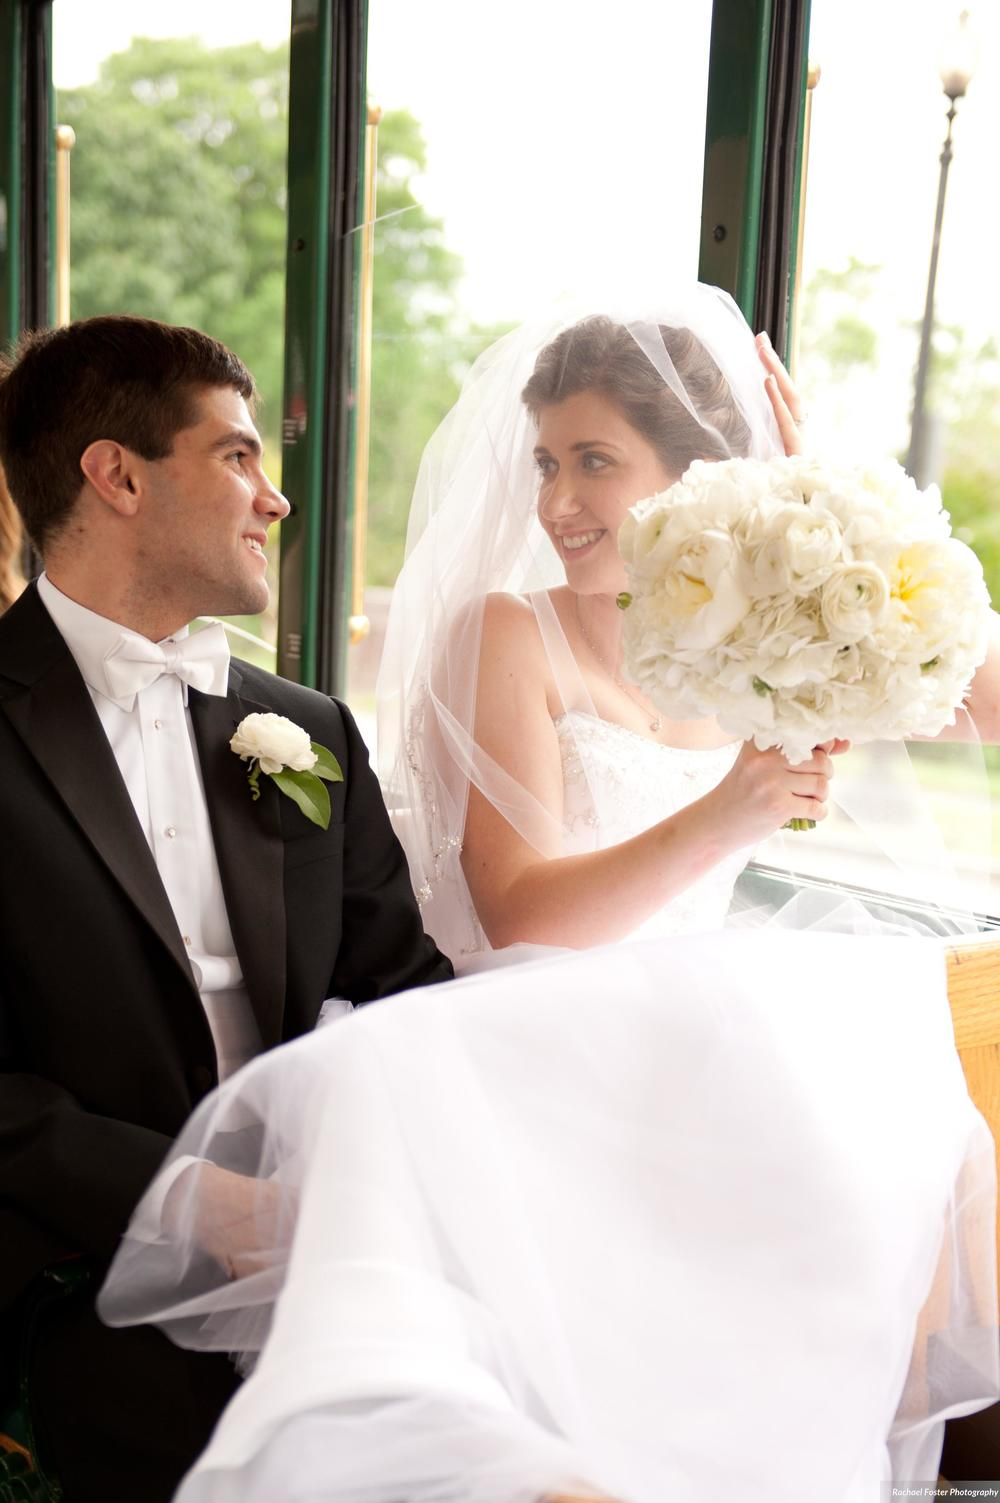 Kathleen + Eric on May 5, 2012 ♥ Rachael Foster Photography at The City Club of Washington (NW DC)